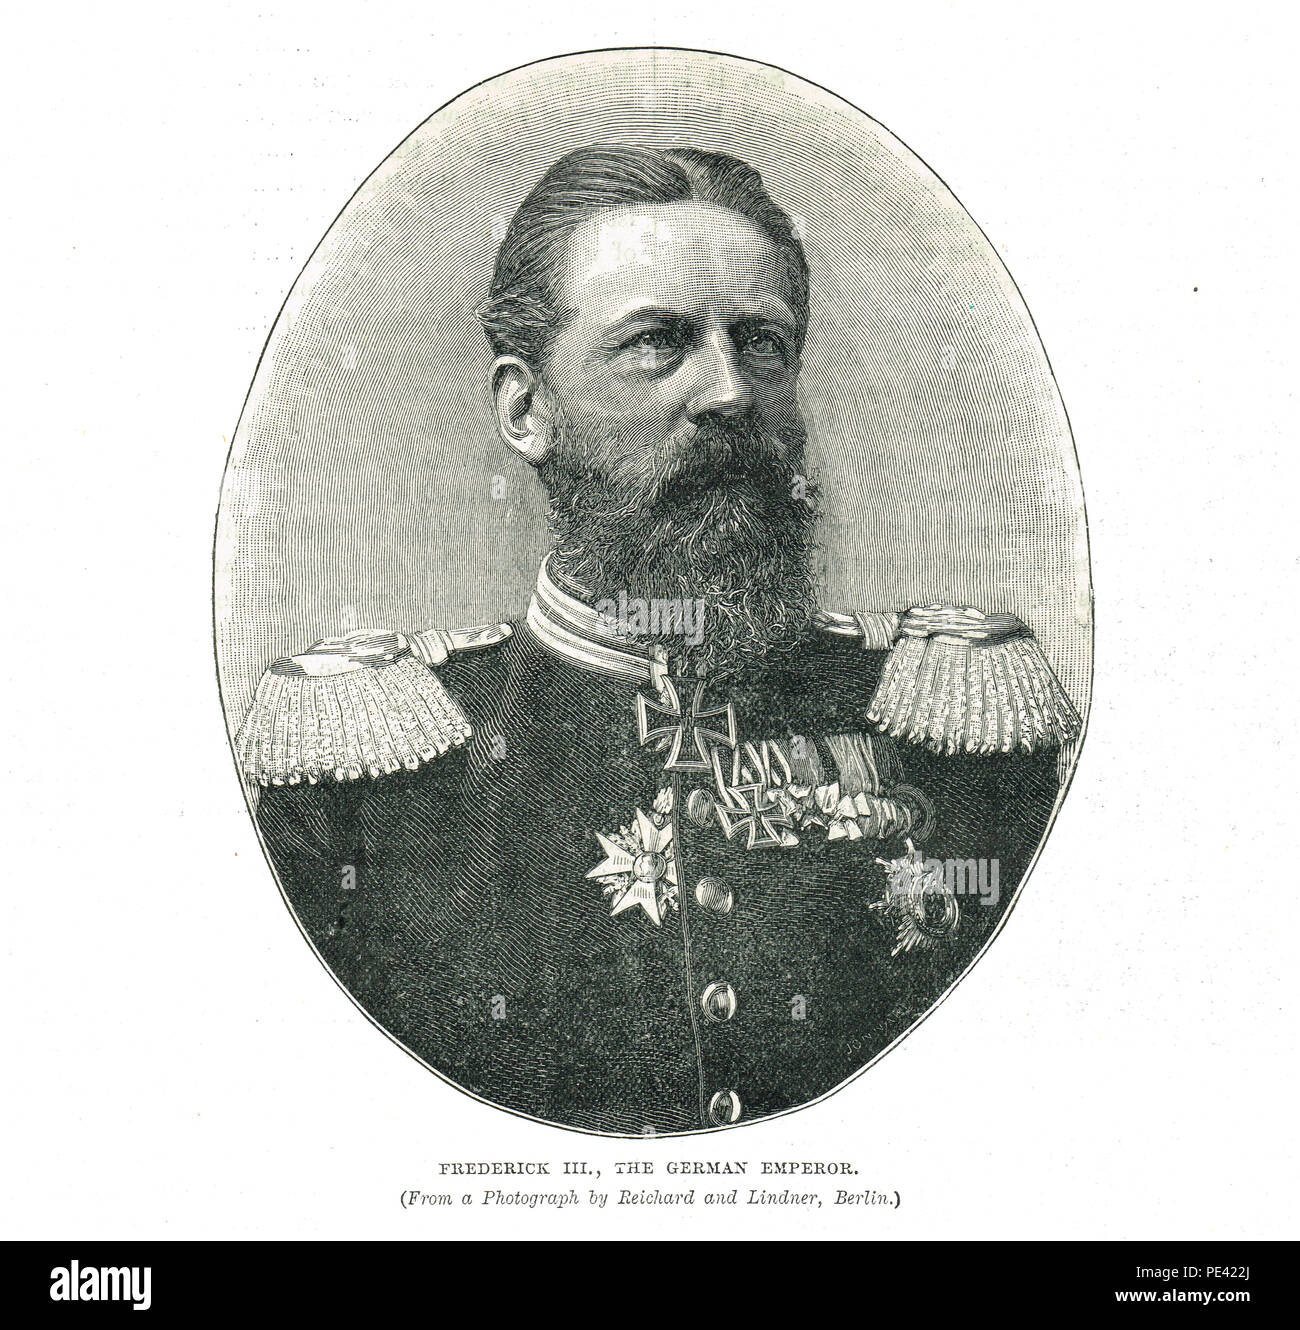 Frederick III, German Emperor, and King of Prussia for ninety-nine days in 1888 - Stock Image